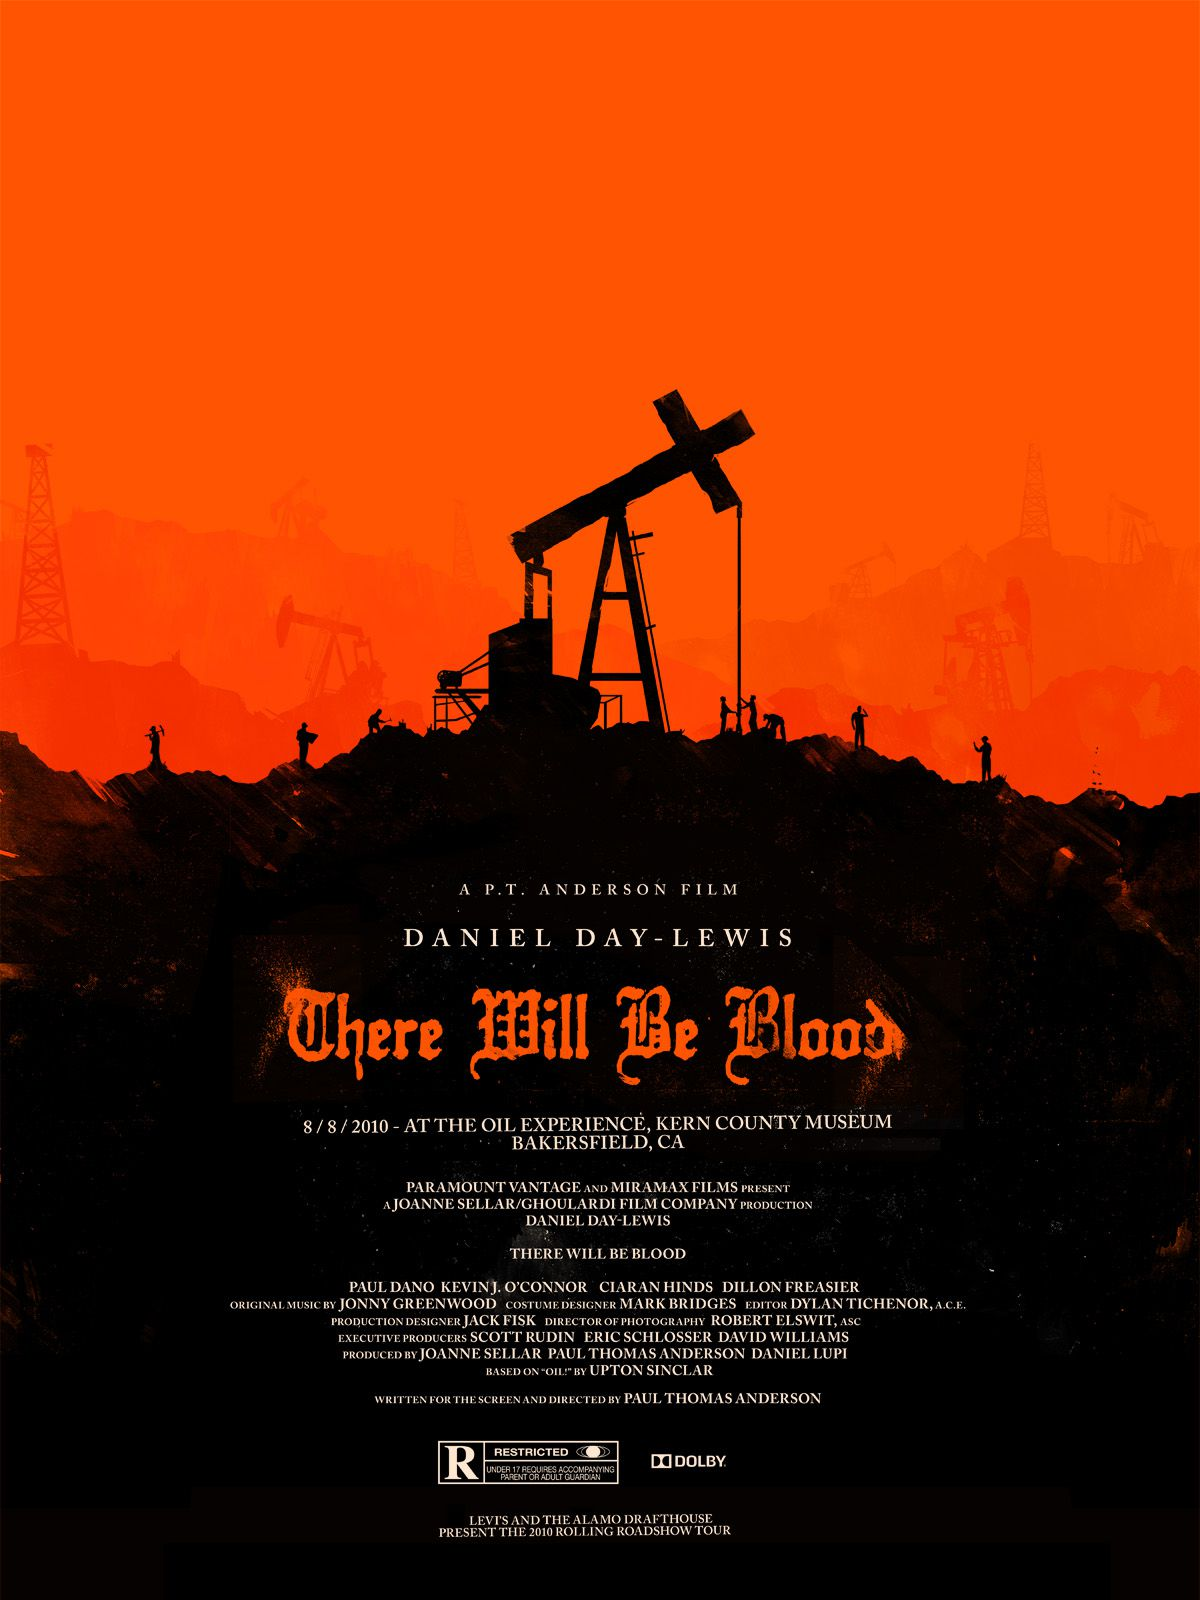 affiche poster there will be blood disney miramax